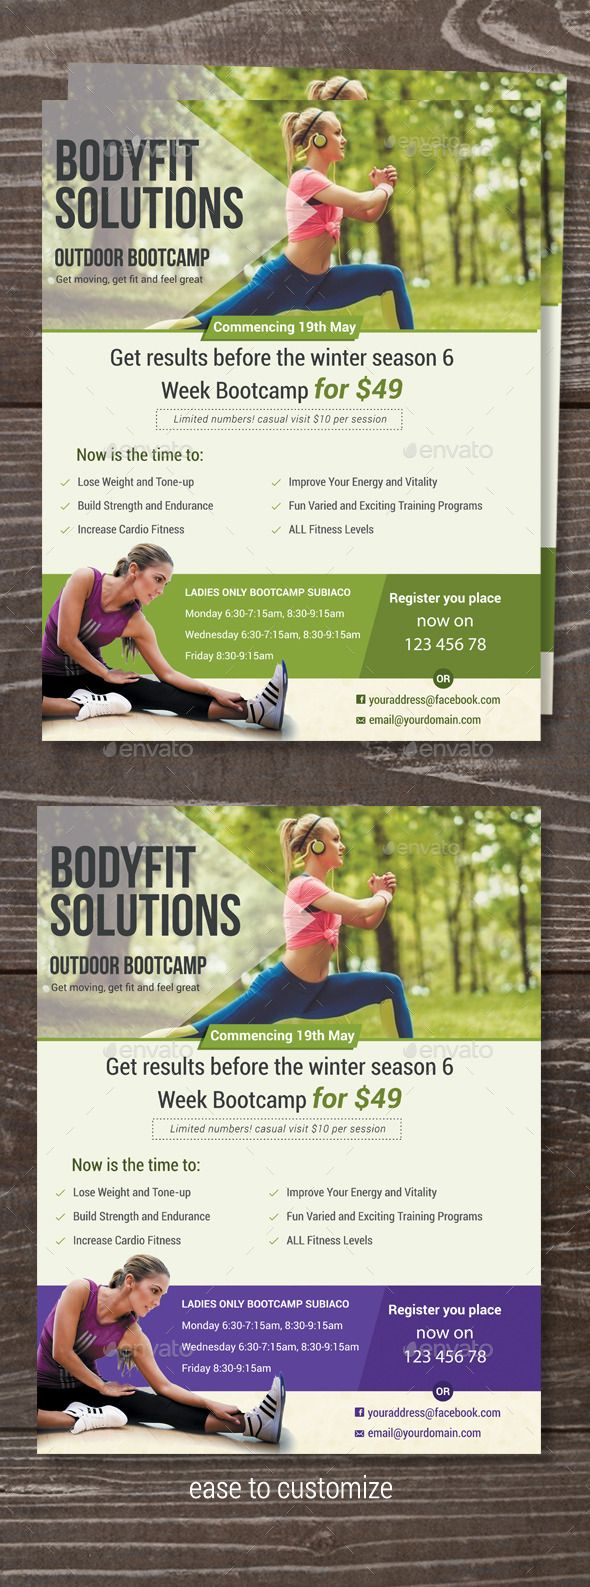 Fitness Bootcamp Flyer Pinterest Fitness Bootcamp Event Flyers - Boot camp flyer template